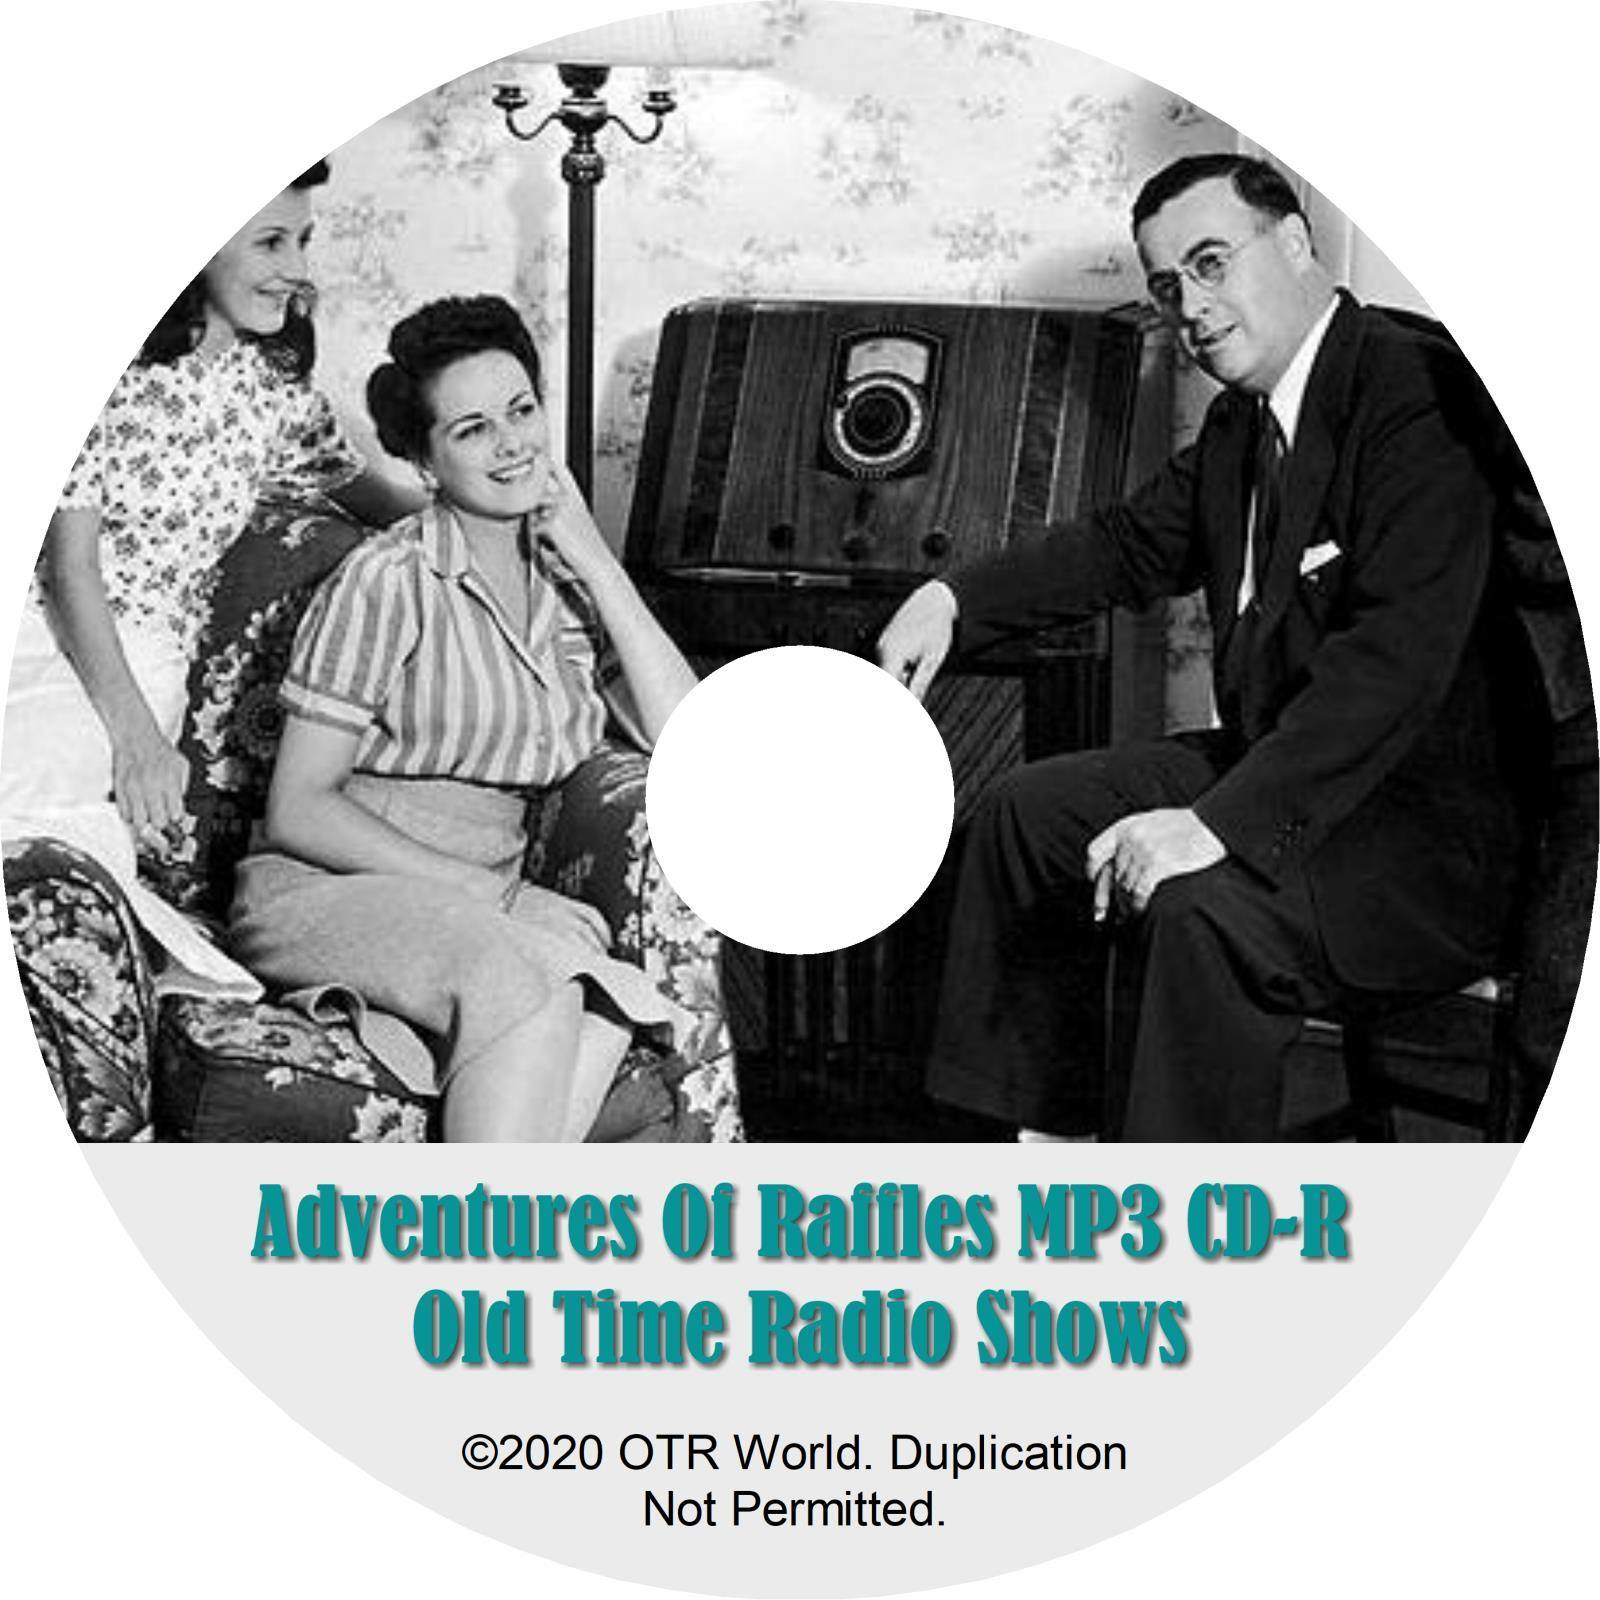 The Adventures Of Raffles OTR Old Time Radio Shows MP3 On CD 4 Episodes - OTR World